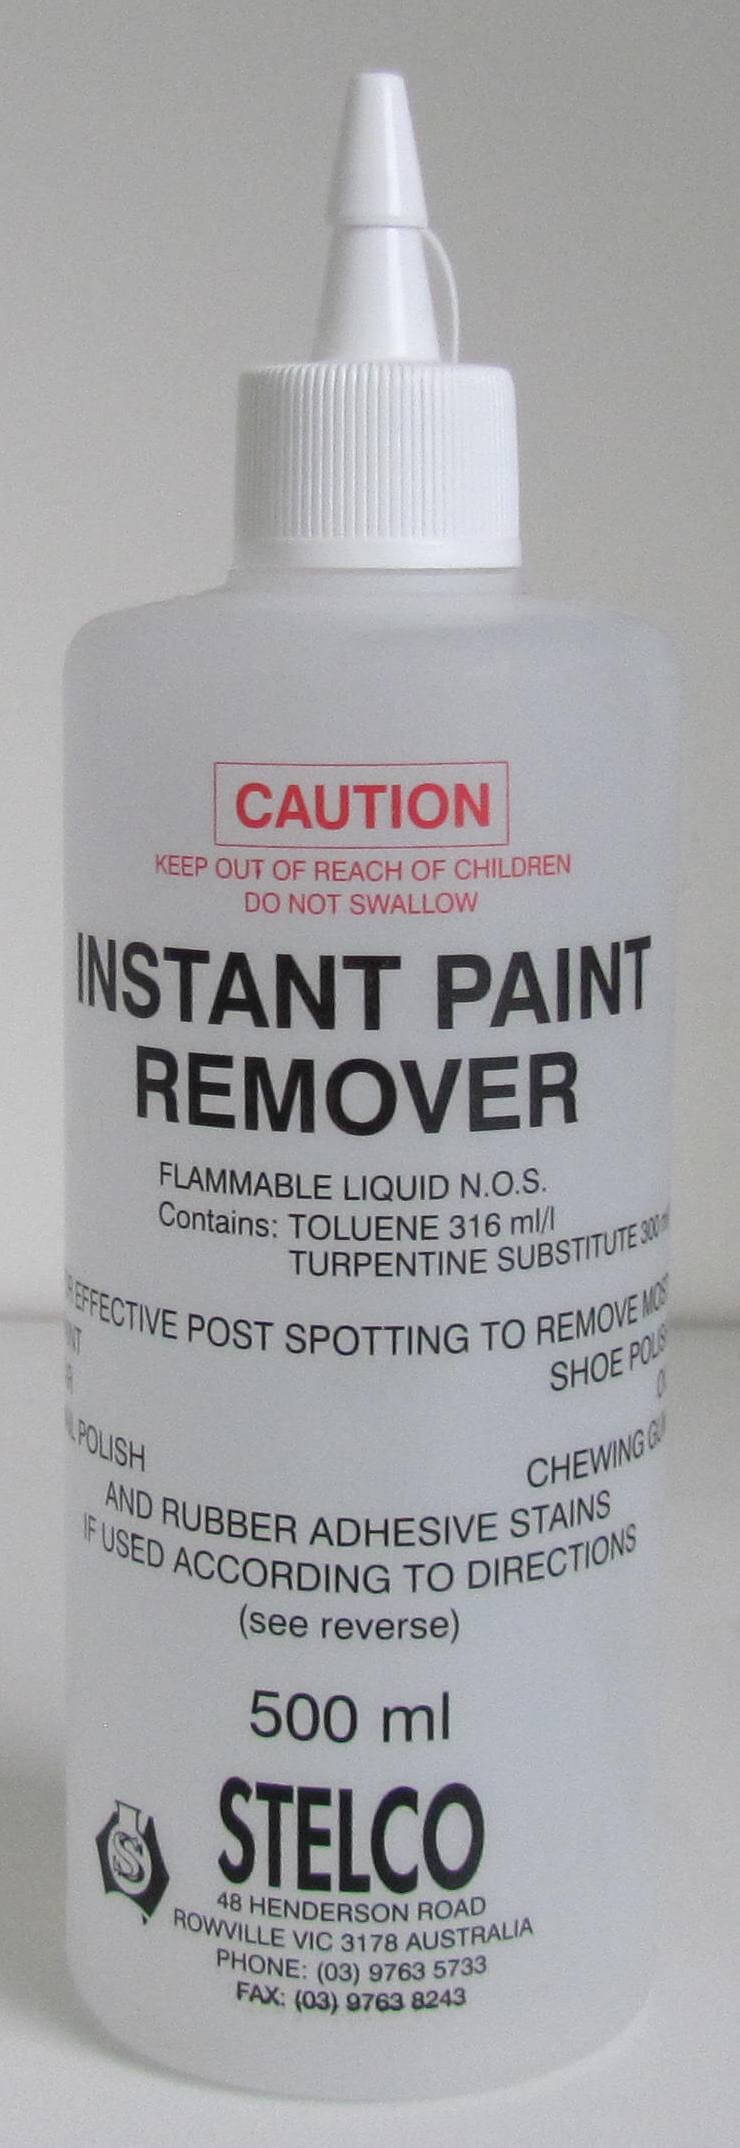 Stelco Instant Paint Remover 5 litres